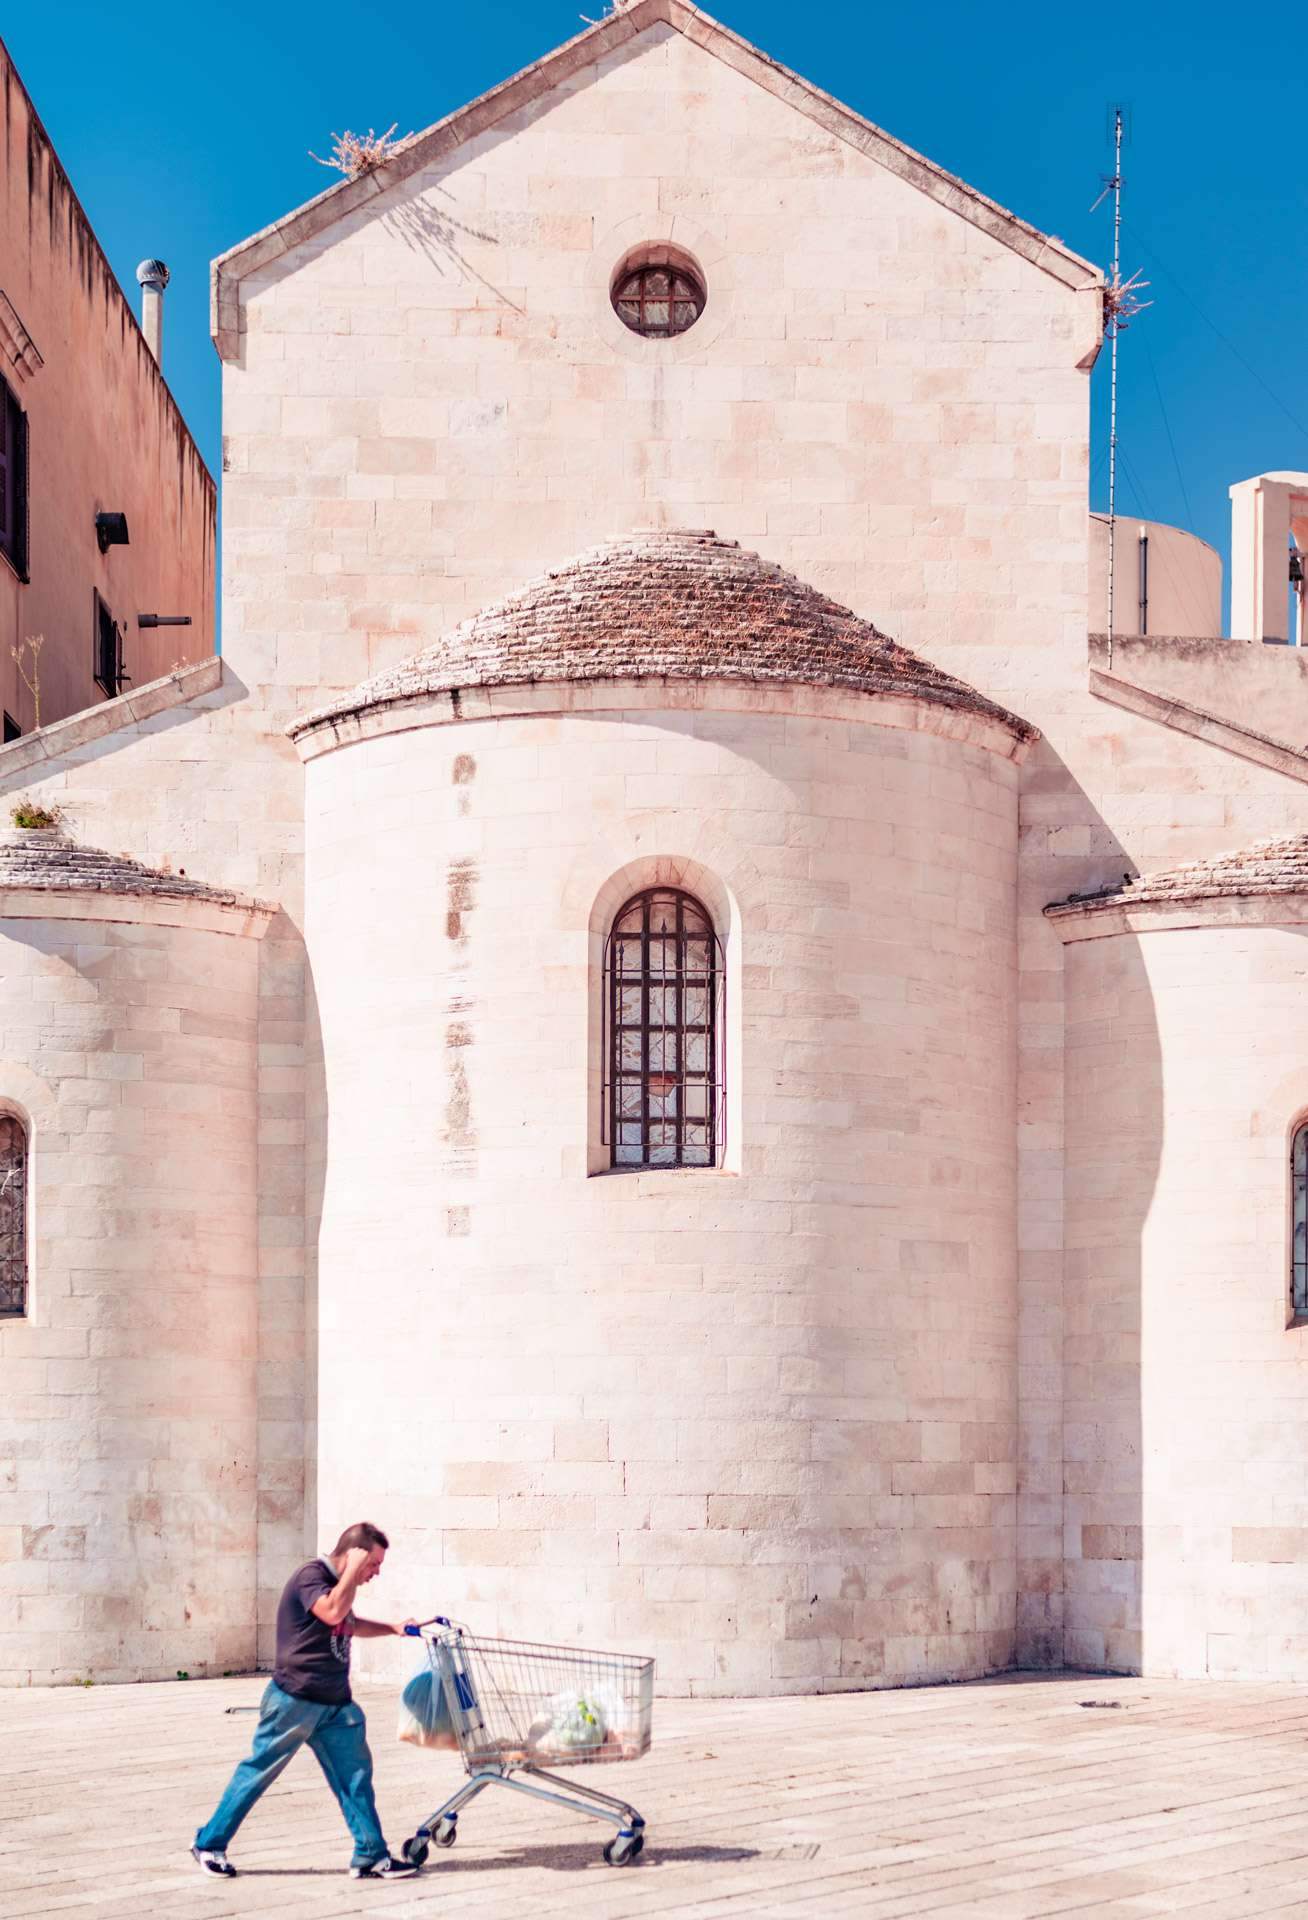 Vallisa church in the old town of Bari city.